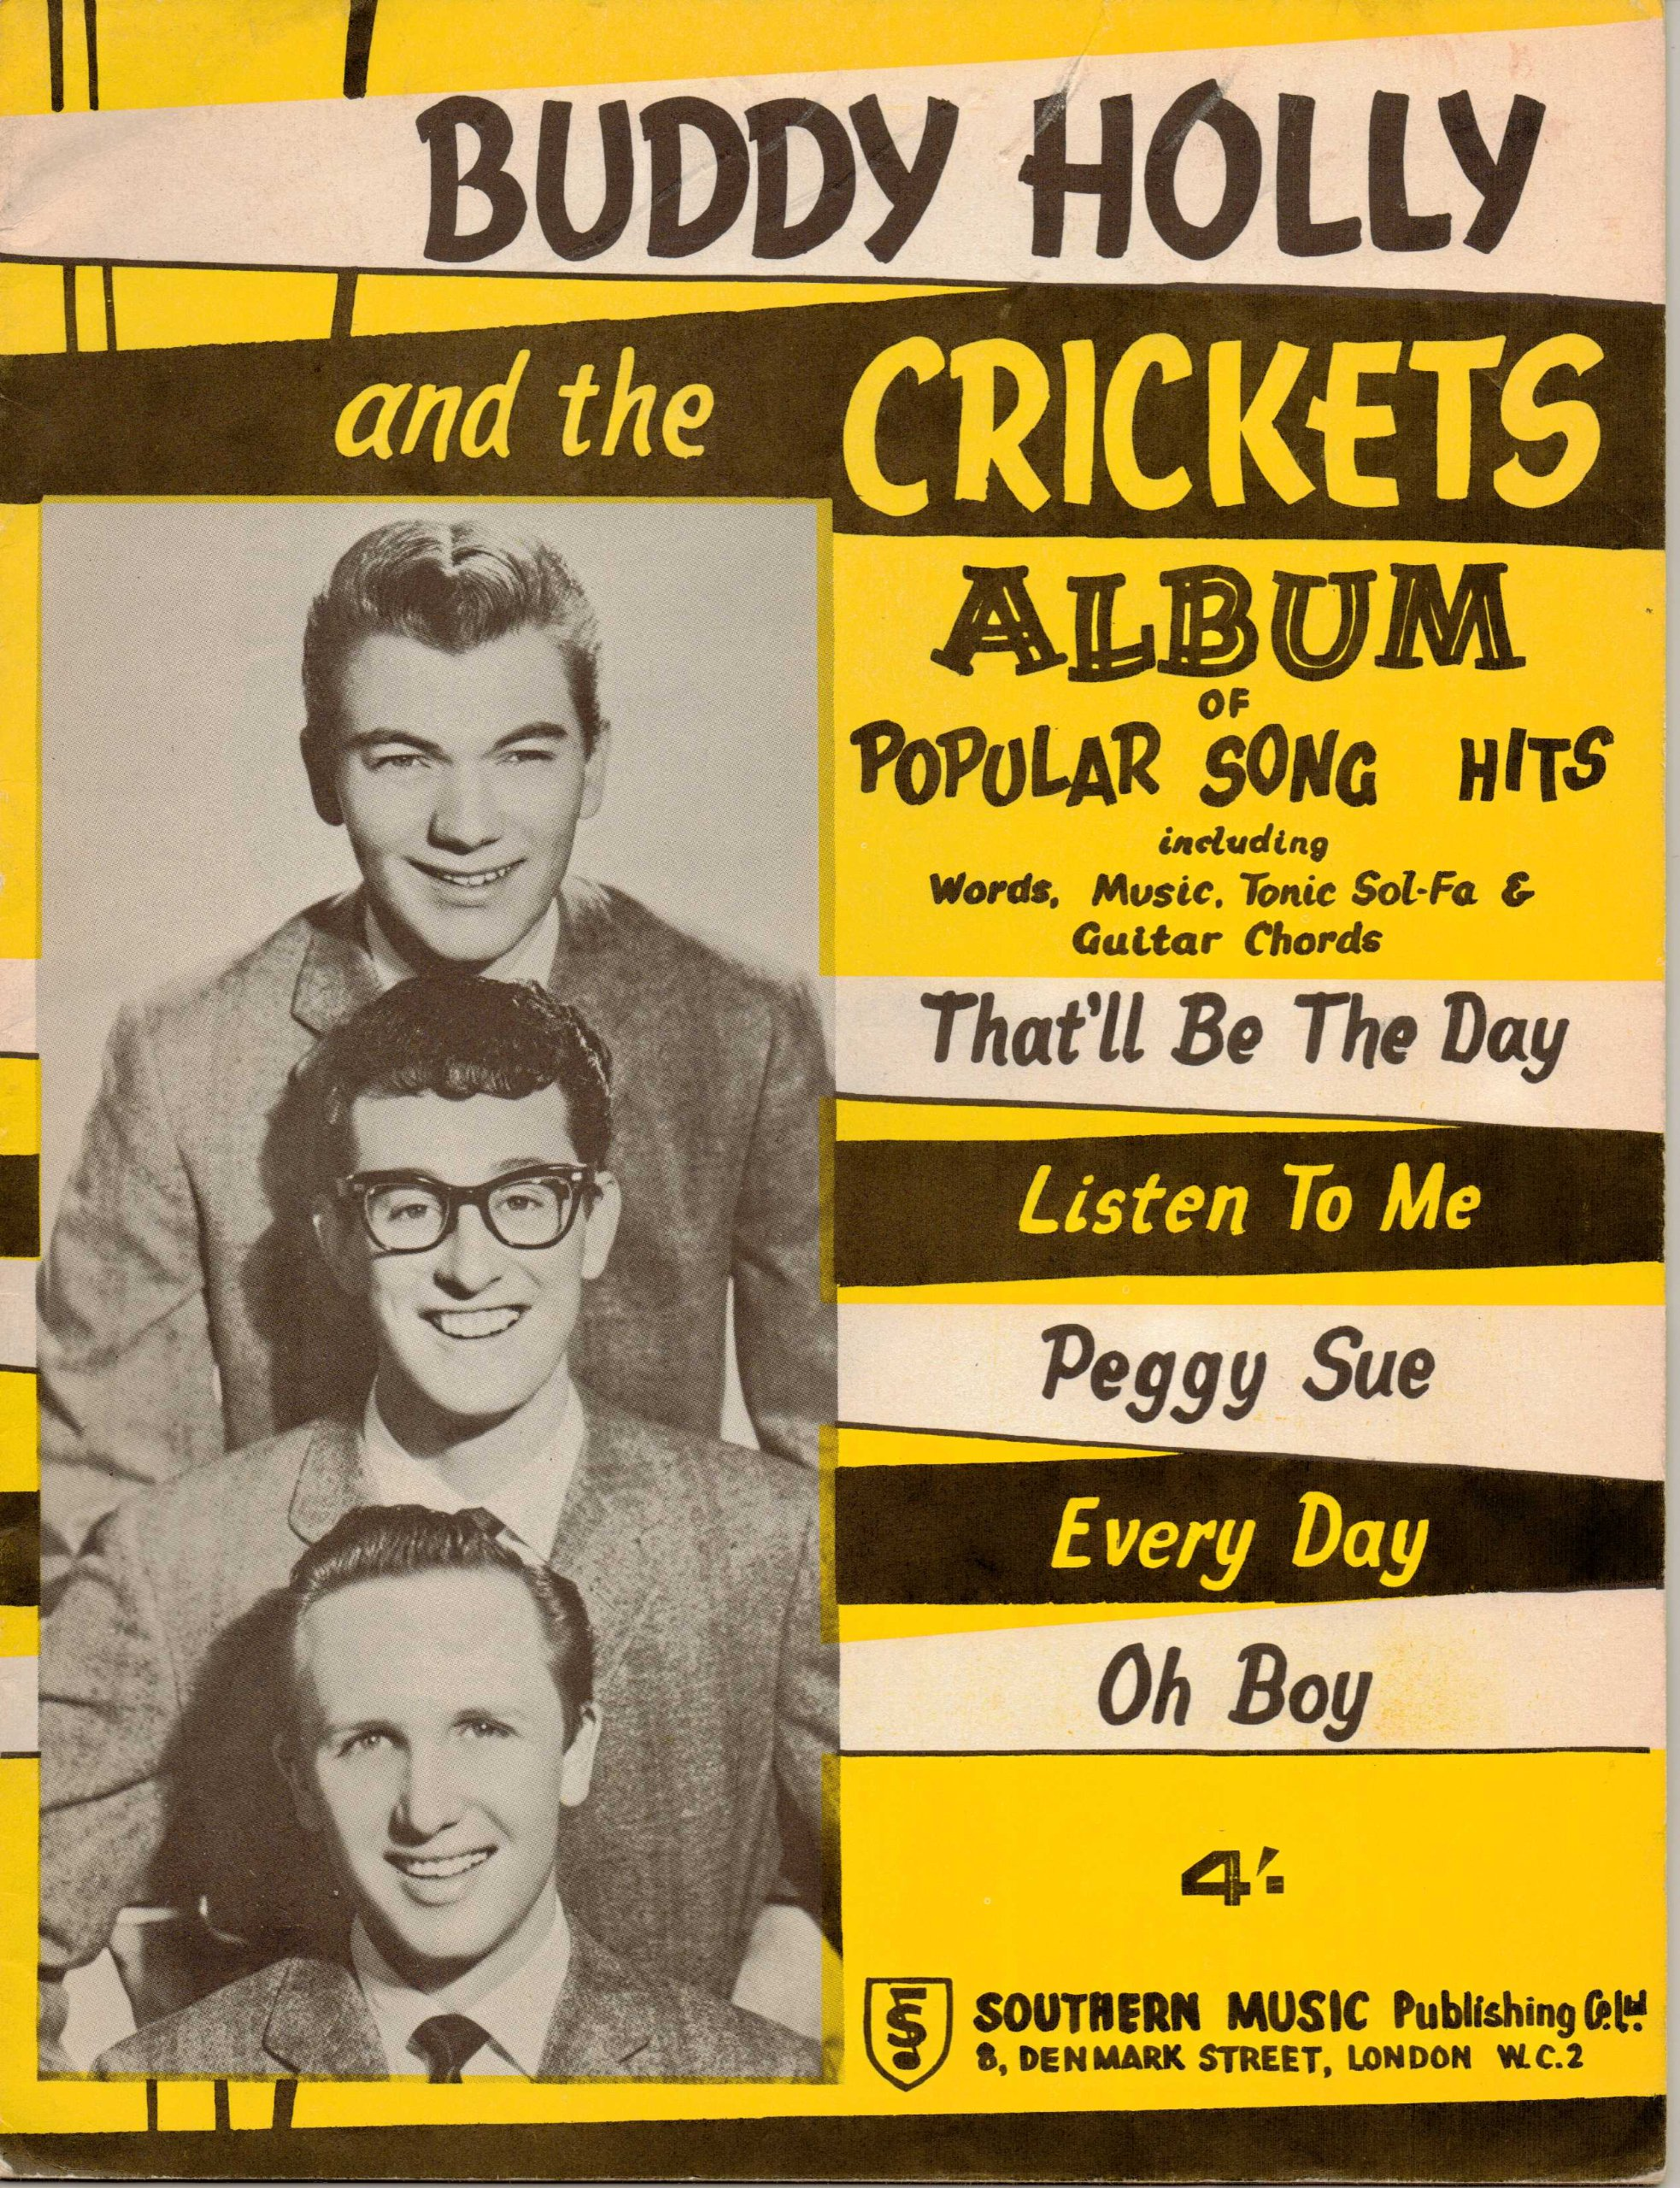 Buddy Holly And The Crickets Album Of Popular Song Hits Including